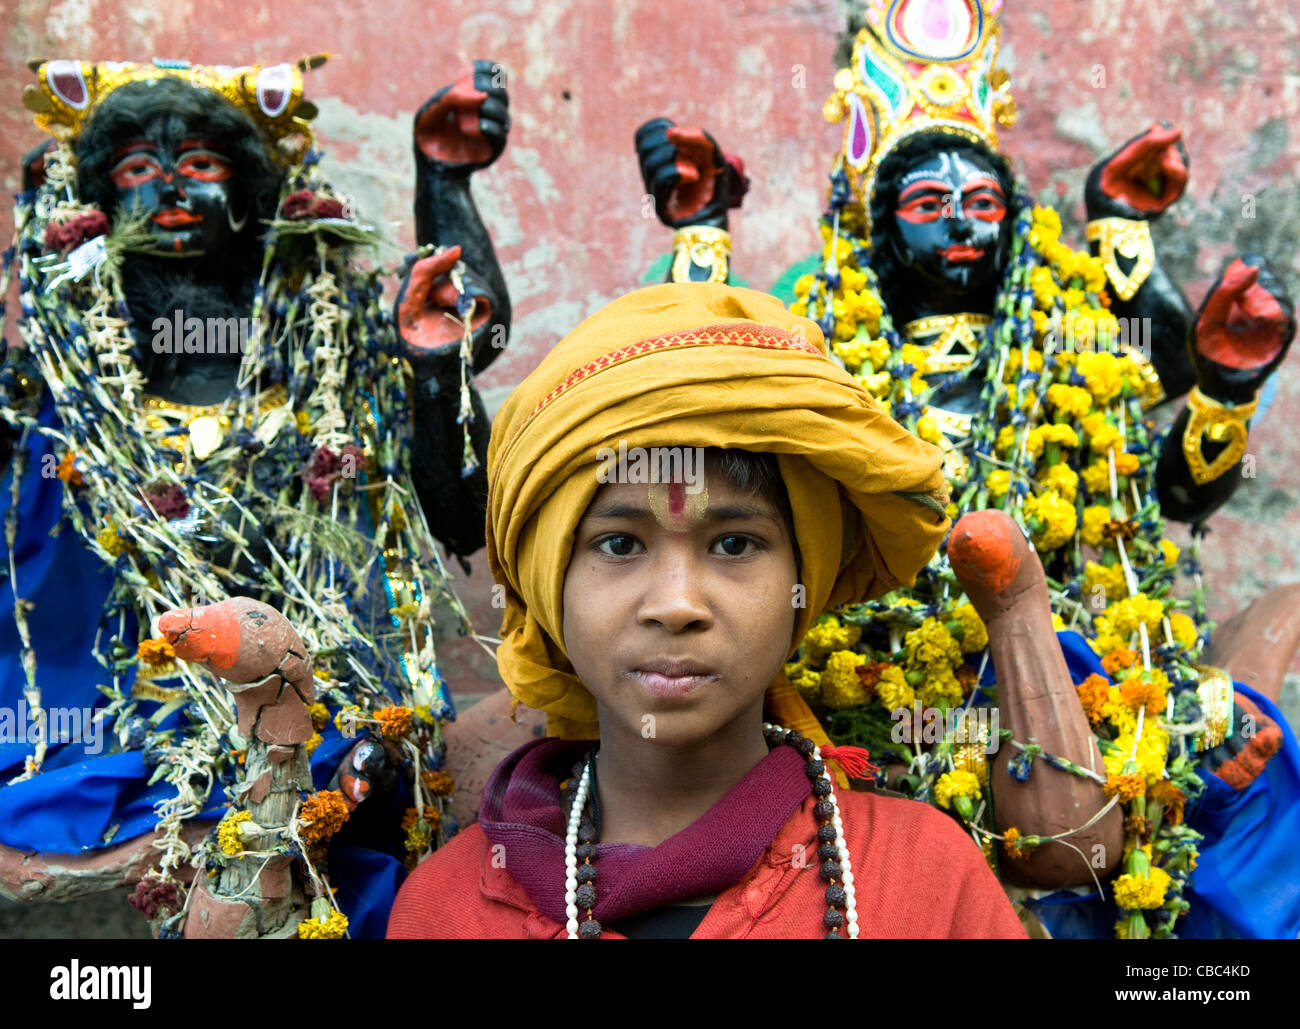 A young sadhu standing by sculptures of Hindu deities. - Stock Image